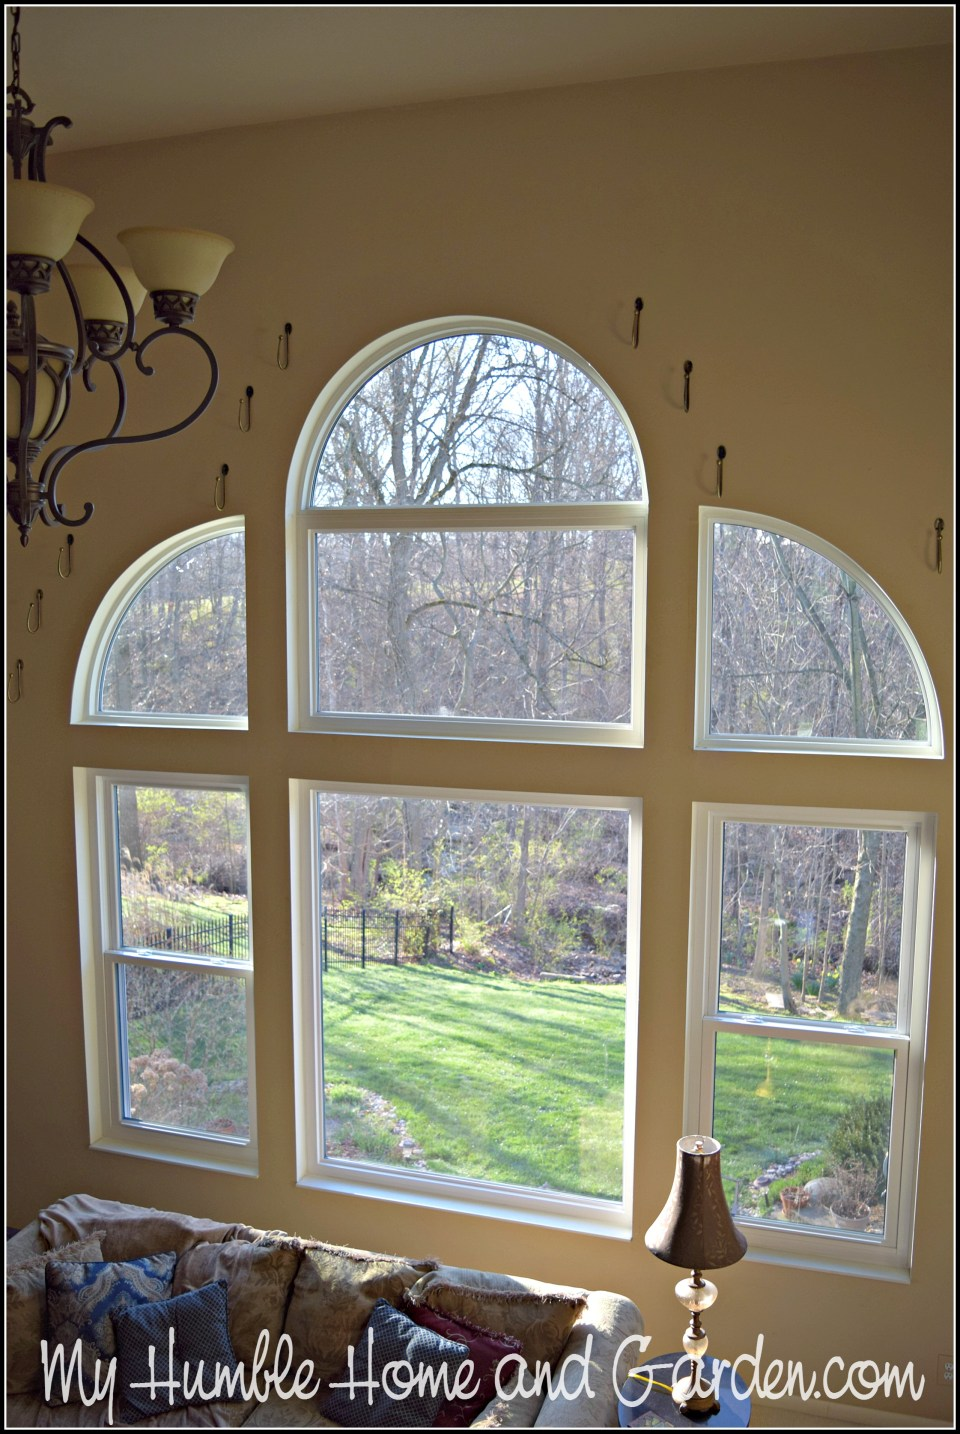 New Windows for the Entire House